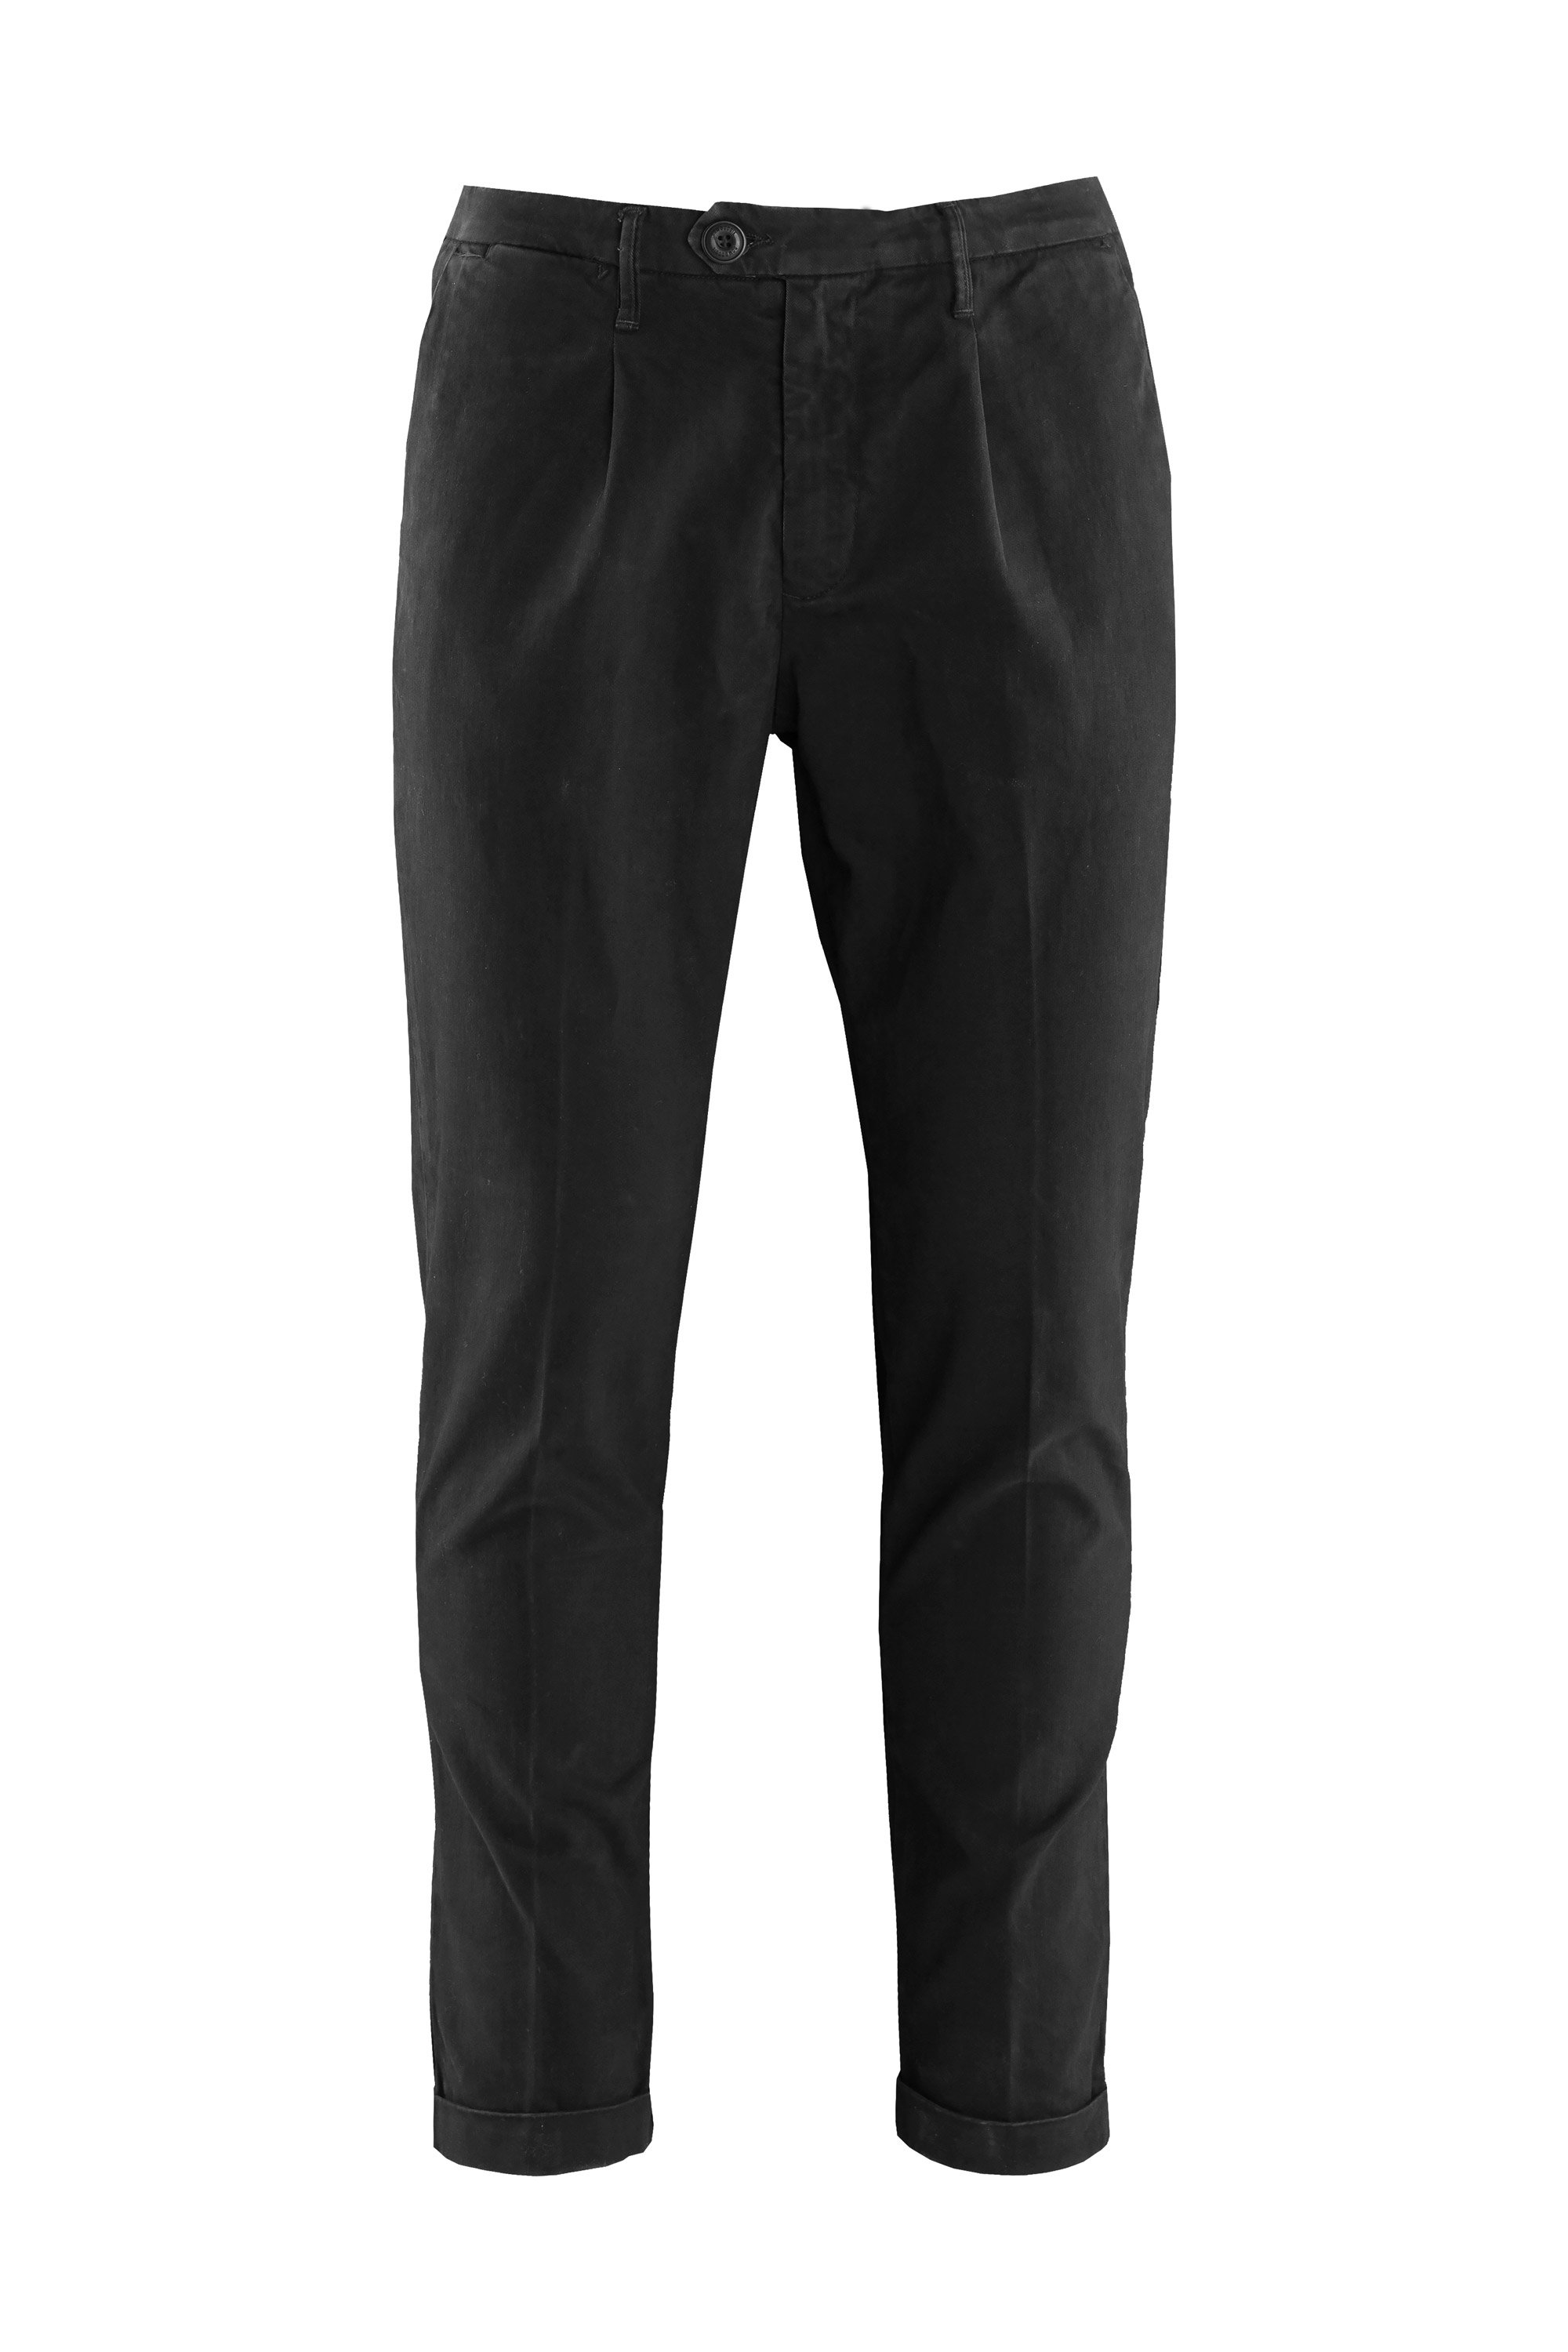 Lask pants cotton gabardine